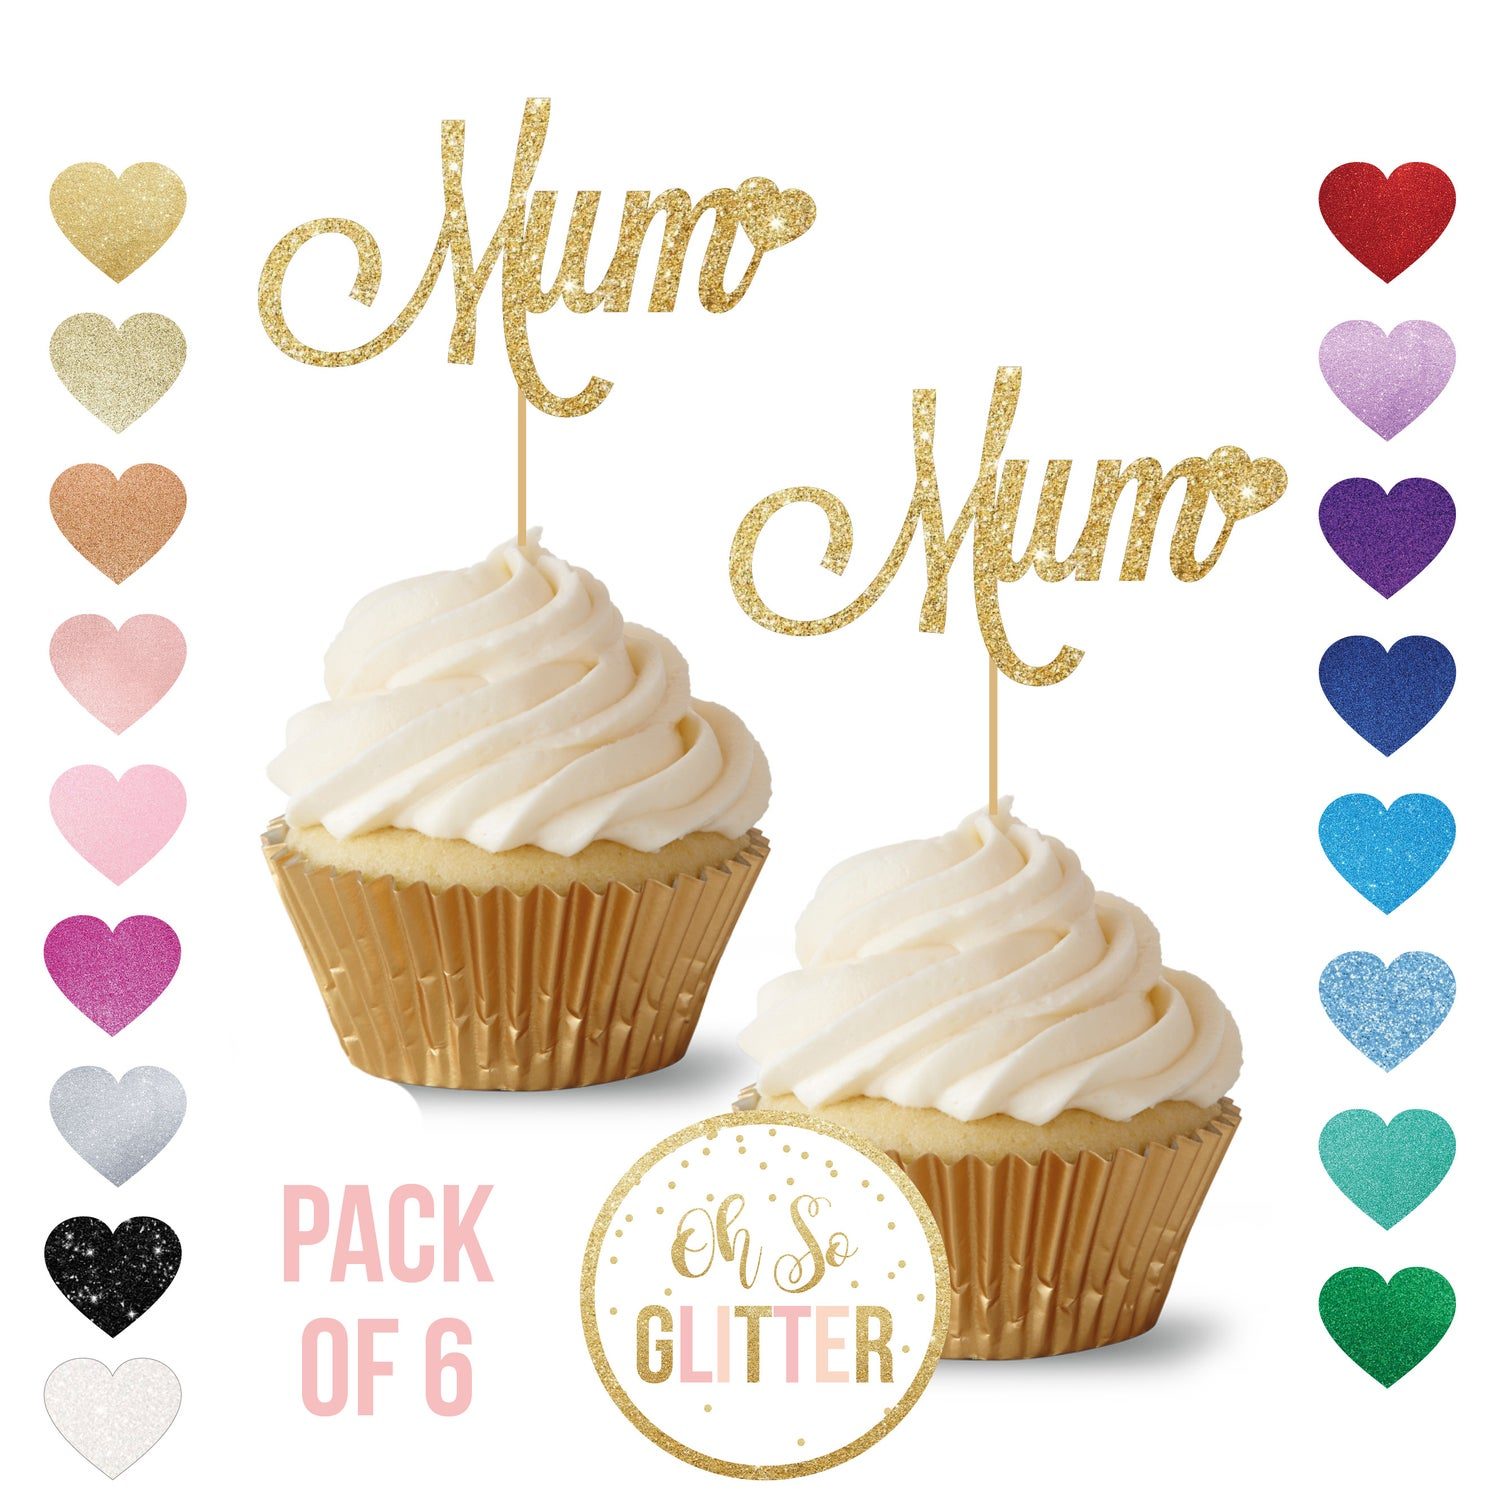 Image of Mum Cupcake Toppers - pack of 6 - Mothers Day